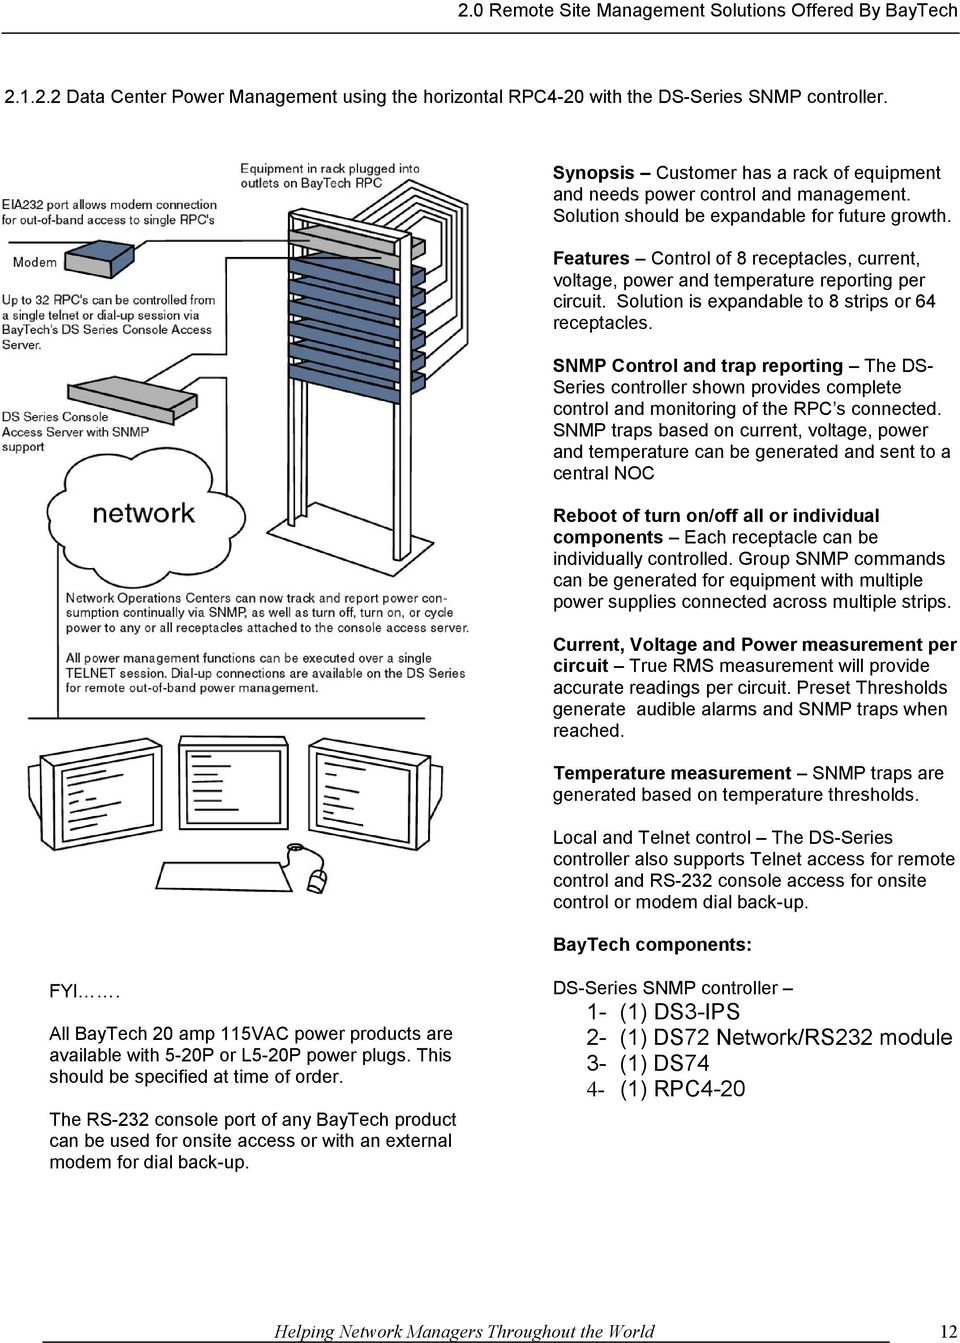 Remote Site Management Solutions Pdf Diagram Furthermore Nema L6 30 Wiring On Serial Cable Snmp Control And Trap Reporting The Ds Series Controller Shown Provides Complete Monitoring